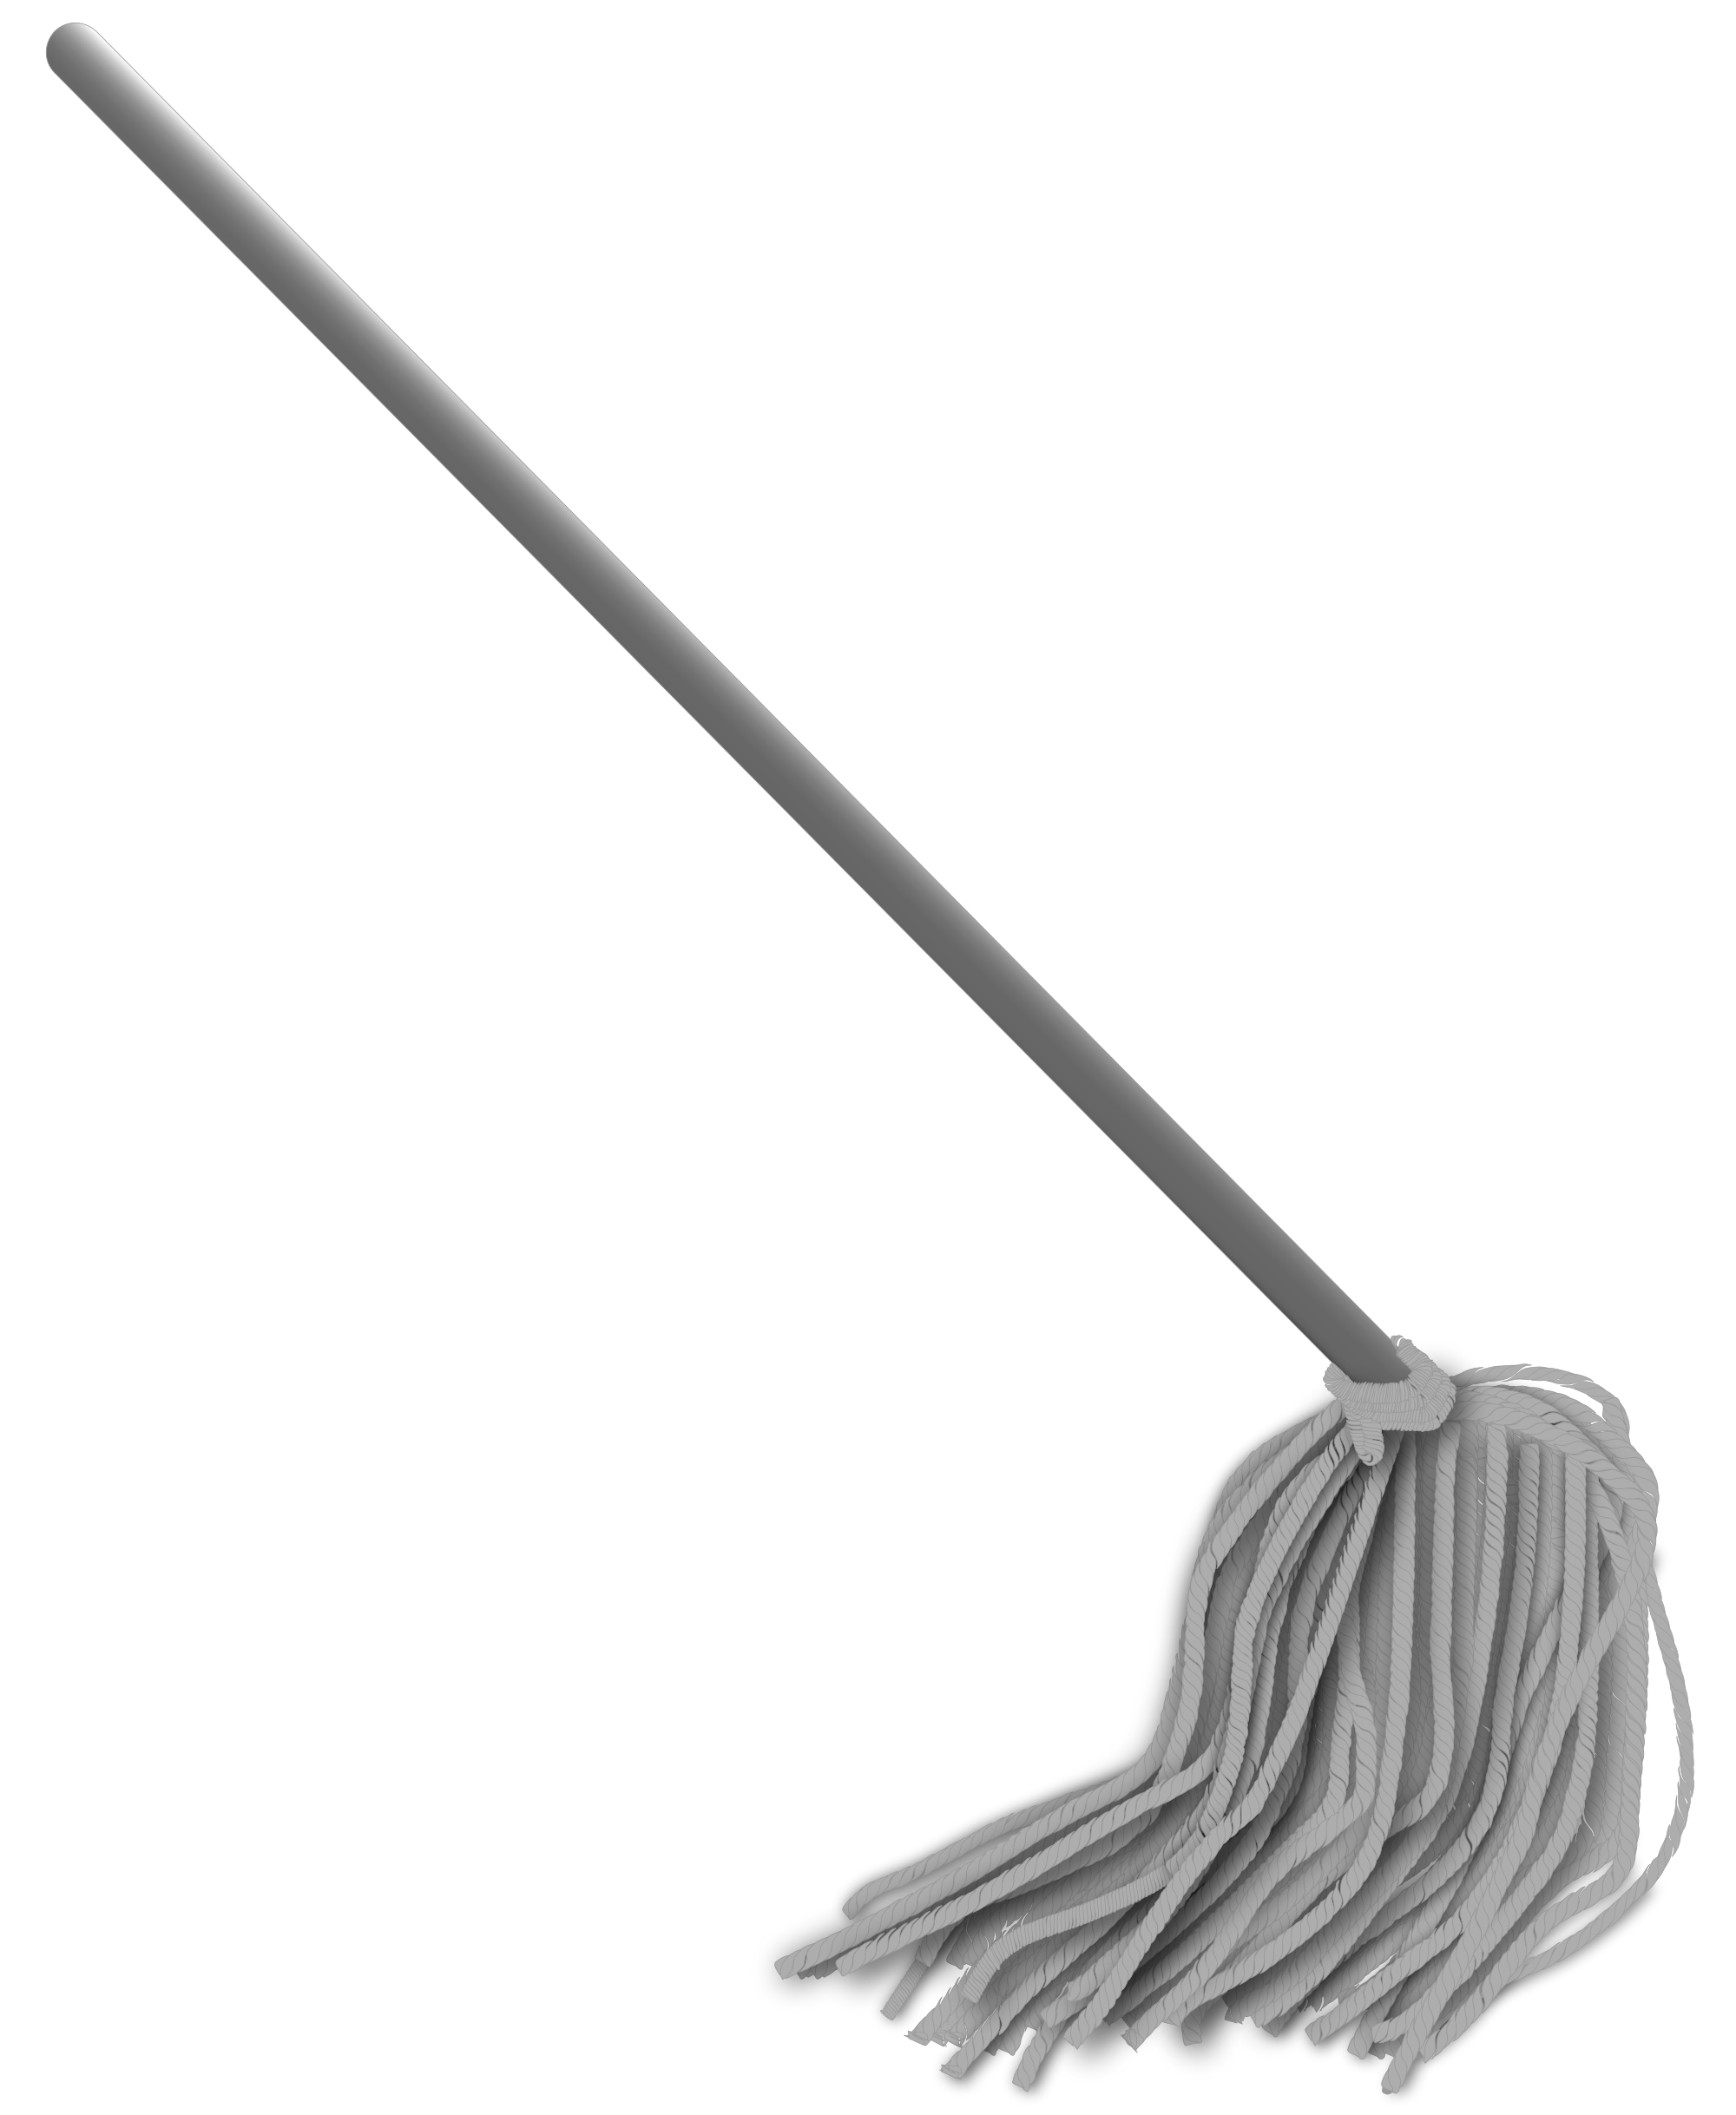 Mop transparent. Graphic freeuse stock